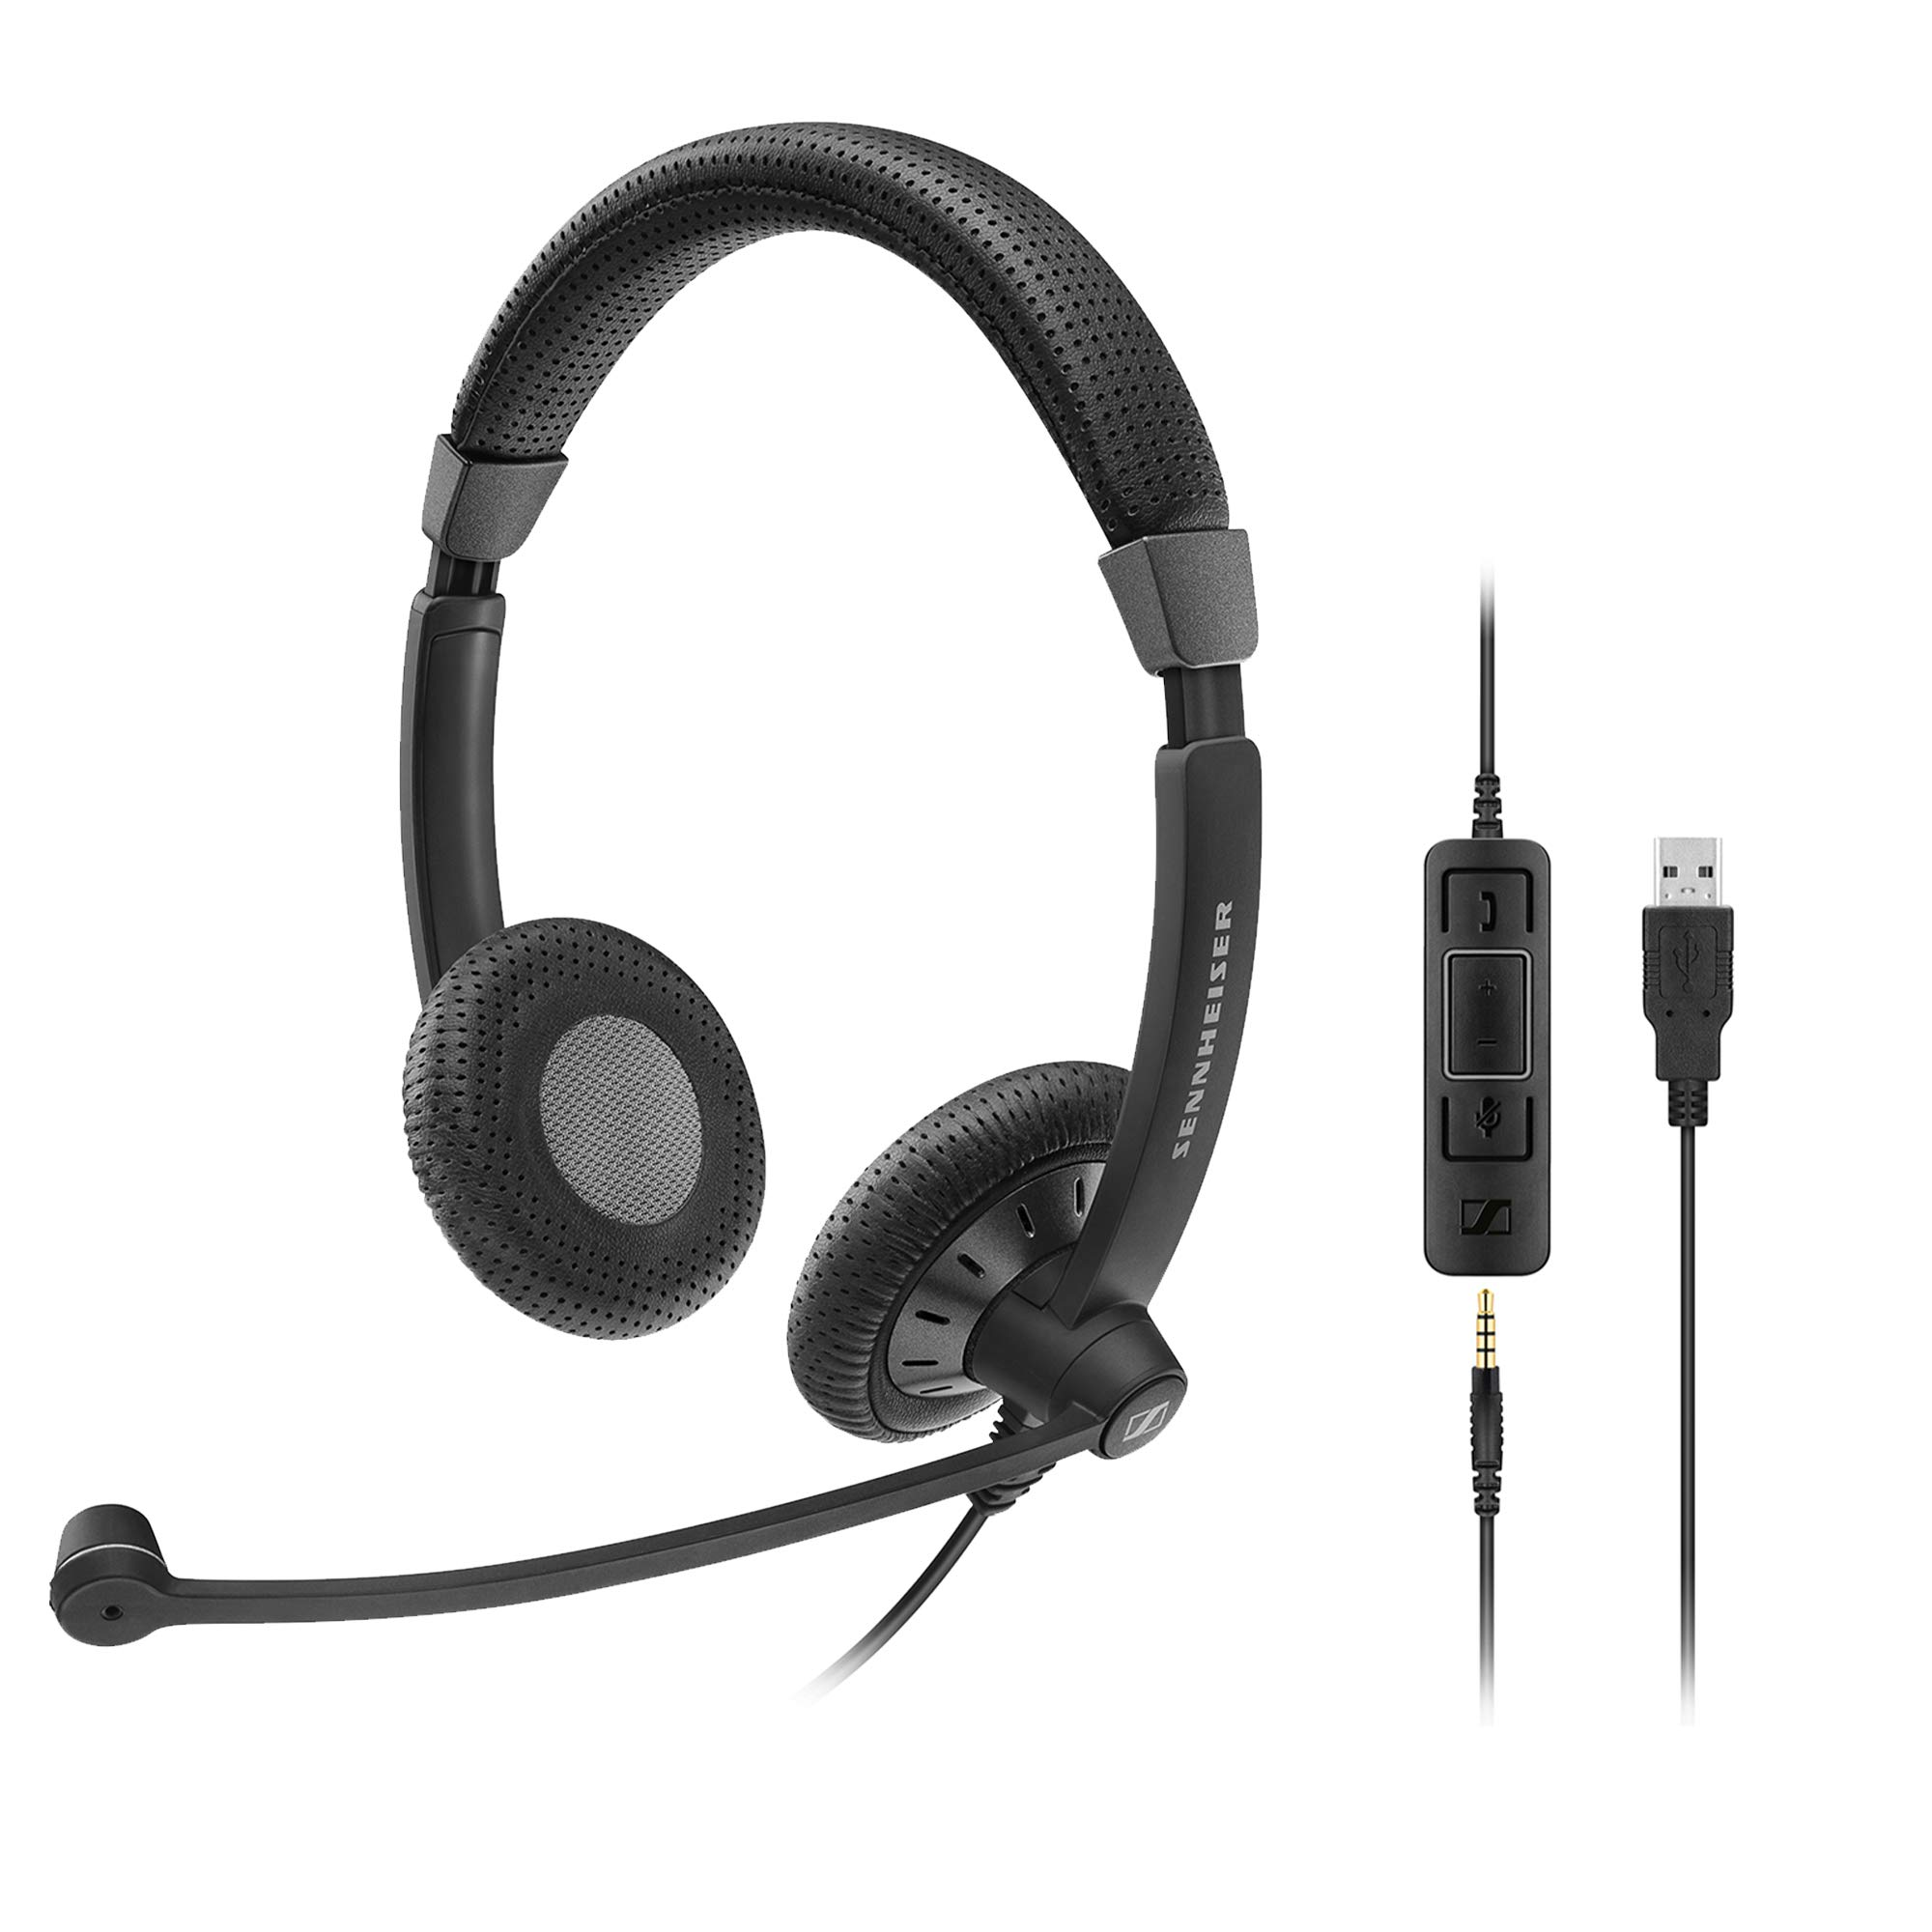 Sennheiser SC 75 USB CTRL (507087) - Double-Sided Business Headset | For Unified Communications, with Mobile Phone, Tablet, Softphone, and PC | HD Sound & Noise-Cancelling Microphone (Black) by Sennheiser Enterprise Solution